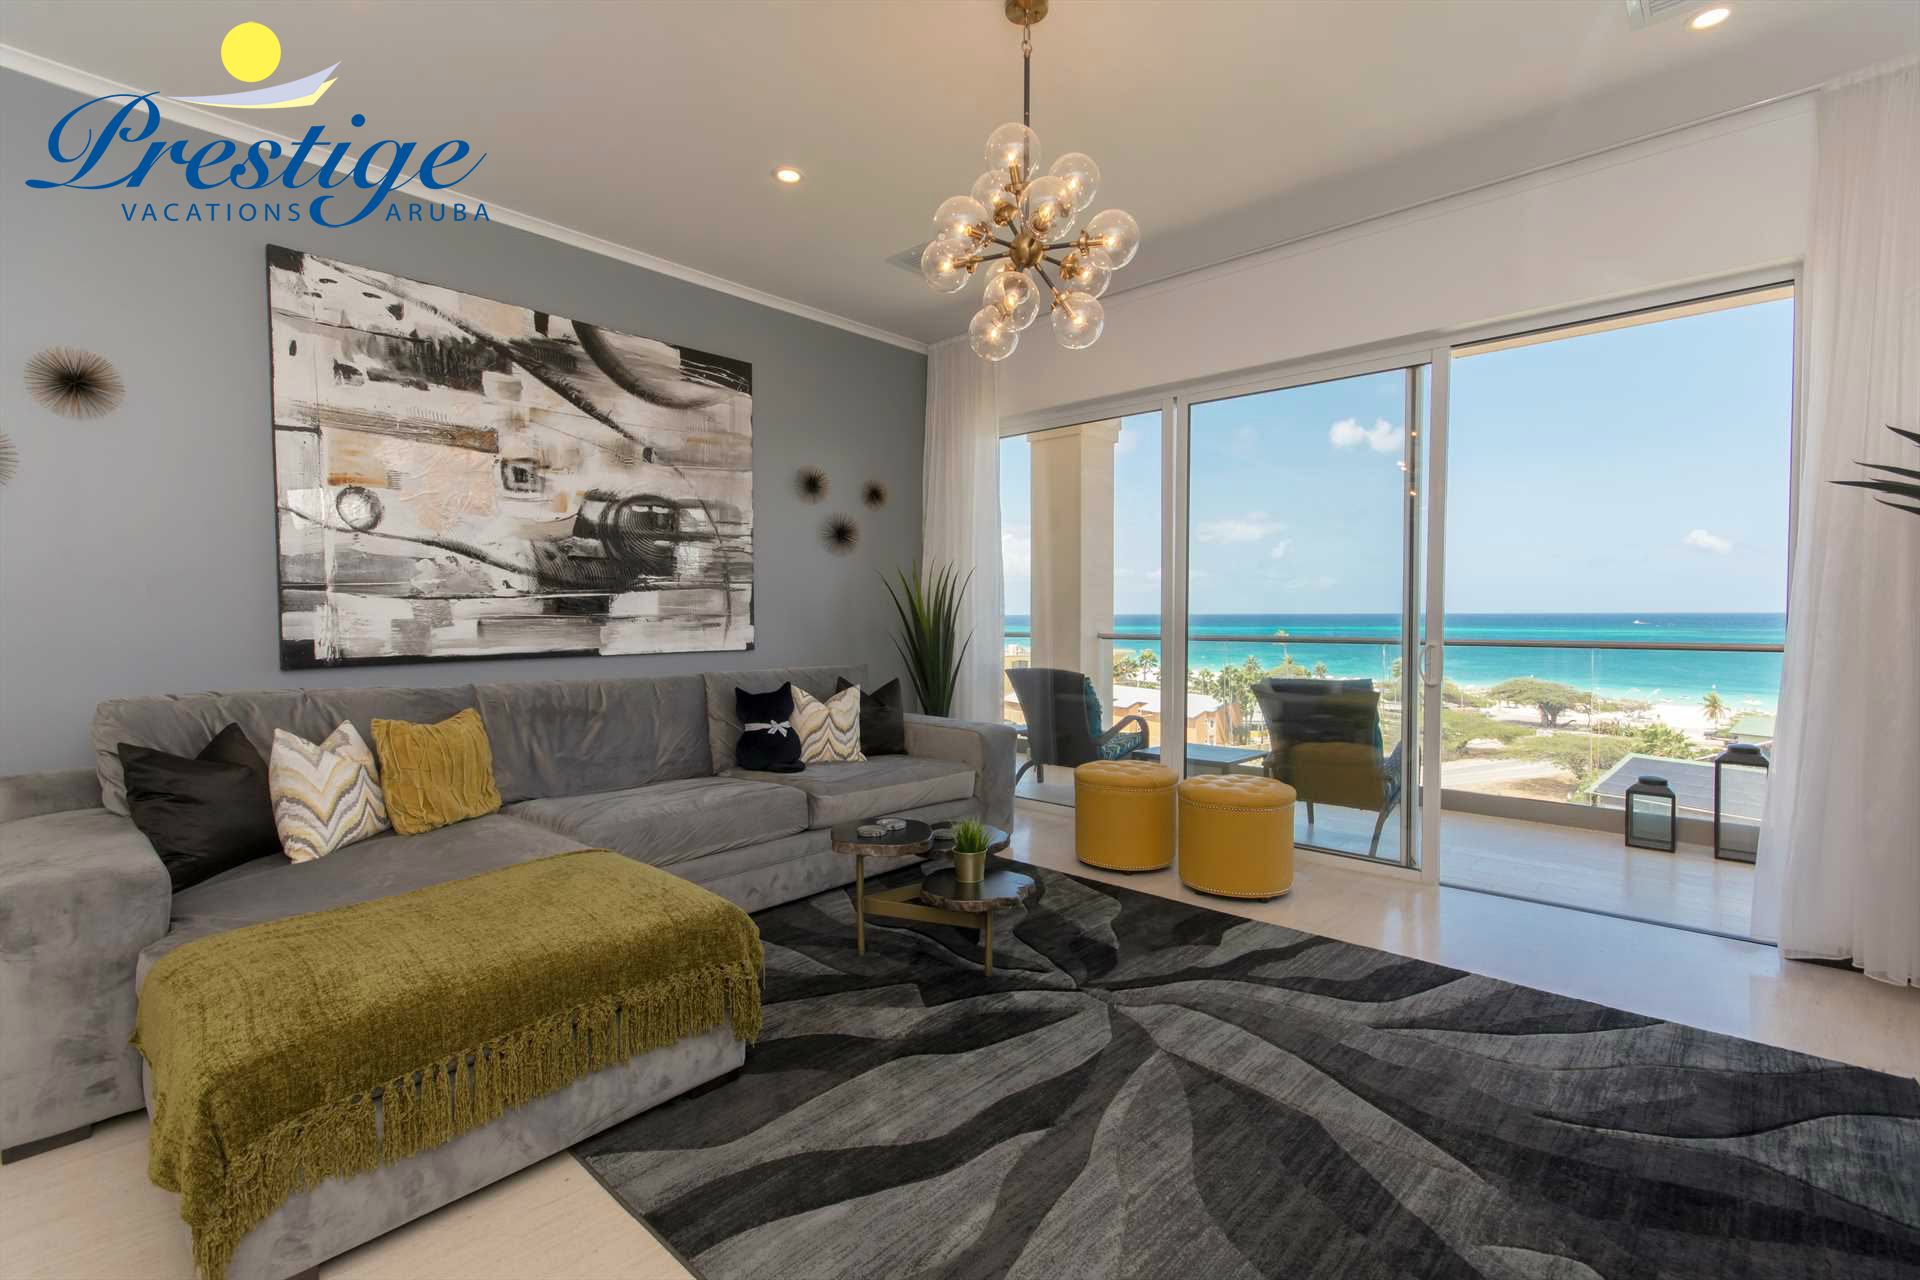 Enjoy the beach scenery from your living area